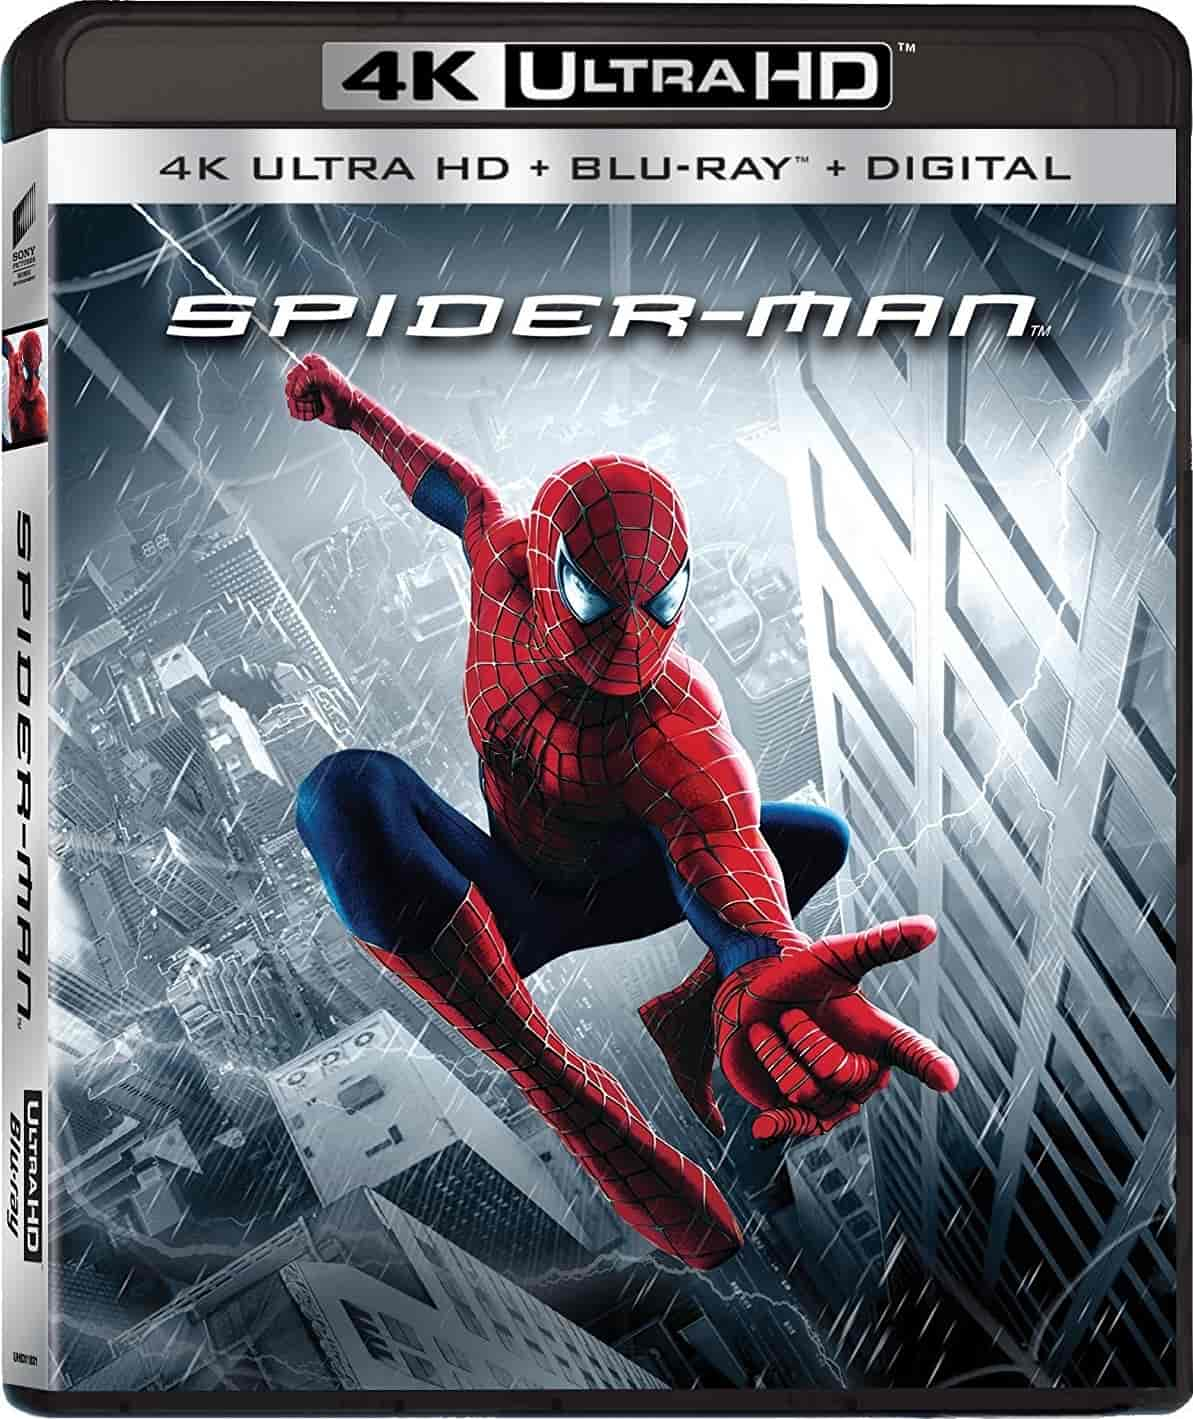 Spider-Man 4K 2002 Ultra HD Rip HDR